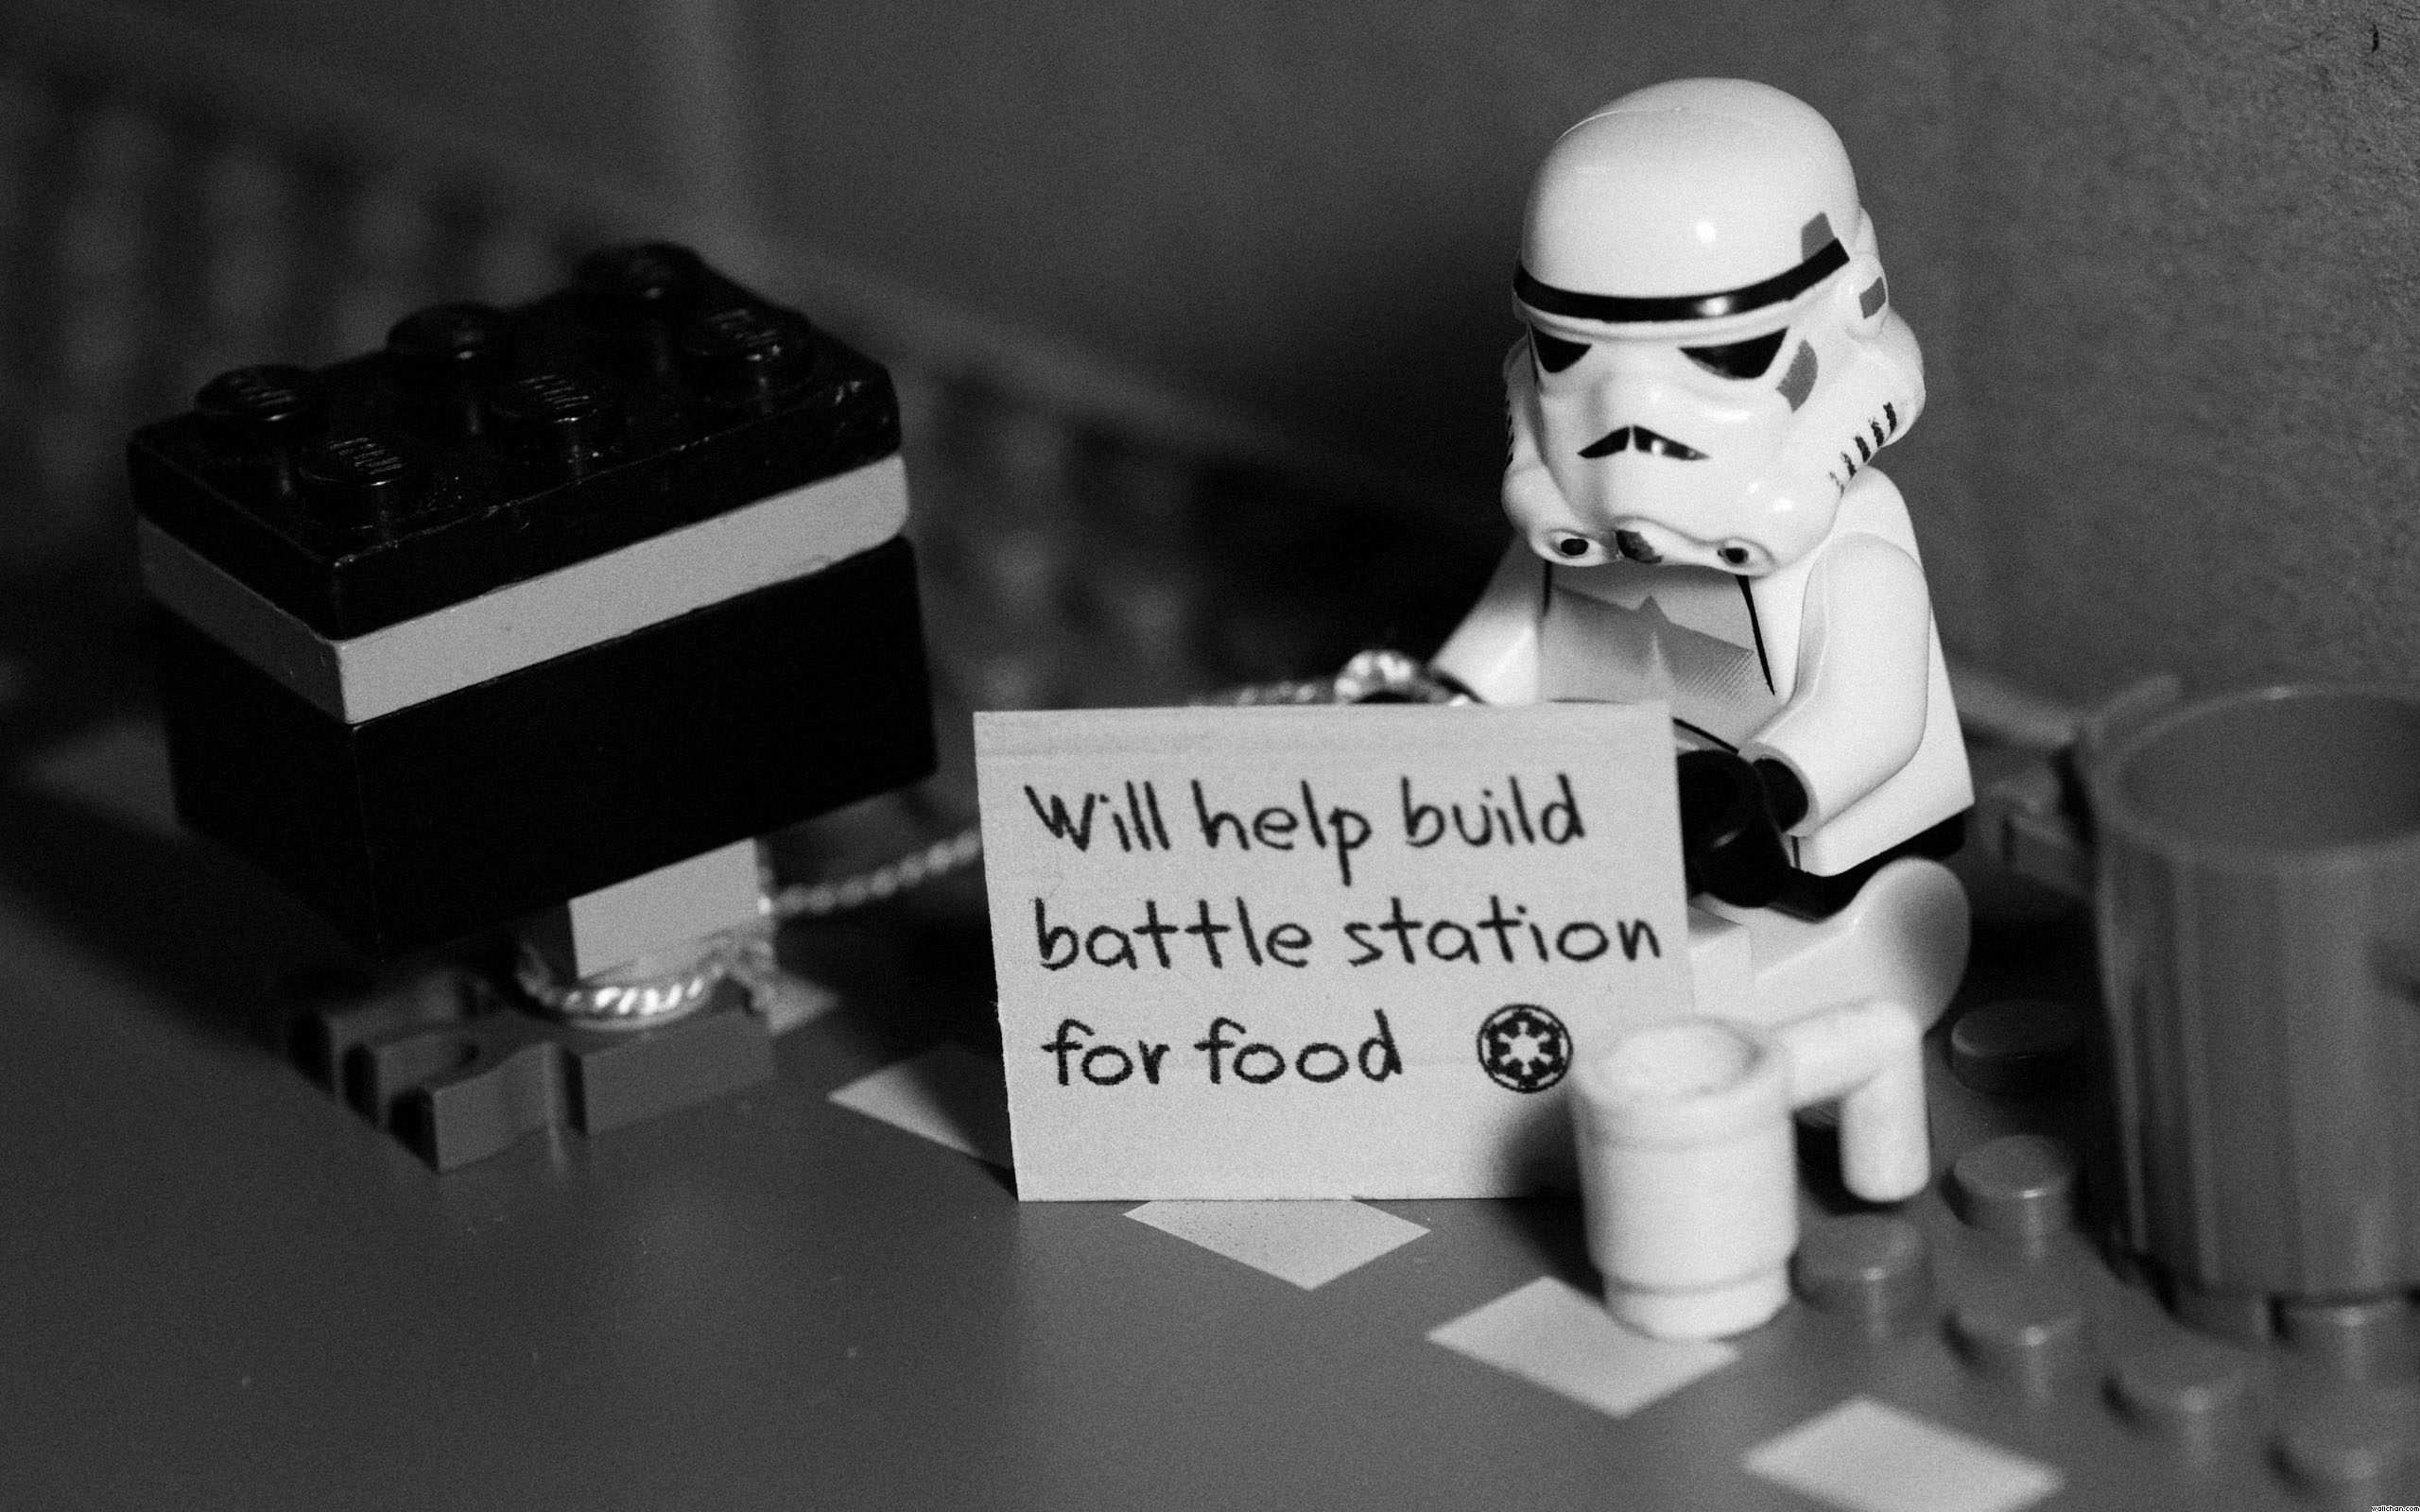 Funny Stormtrooper Wallpaper Star Wars Wallpaper 24174442 Fanpop